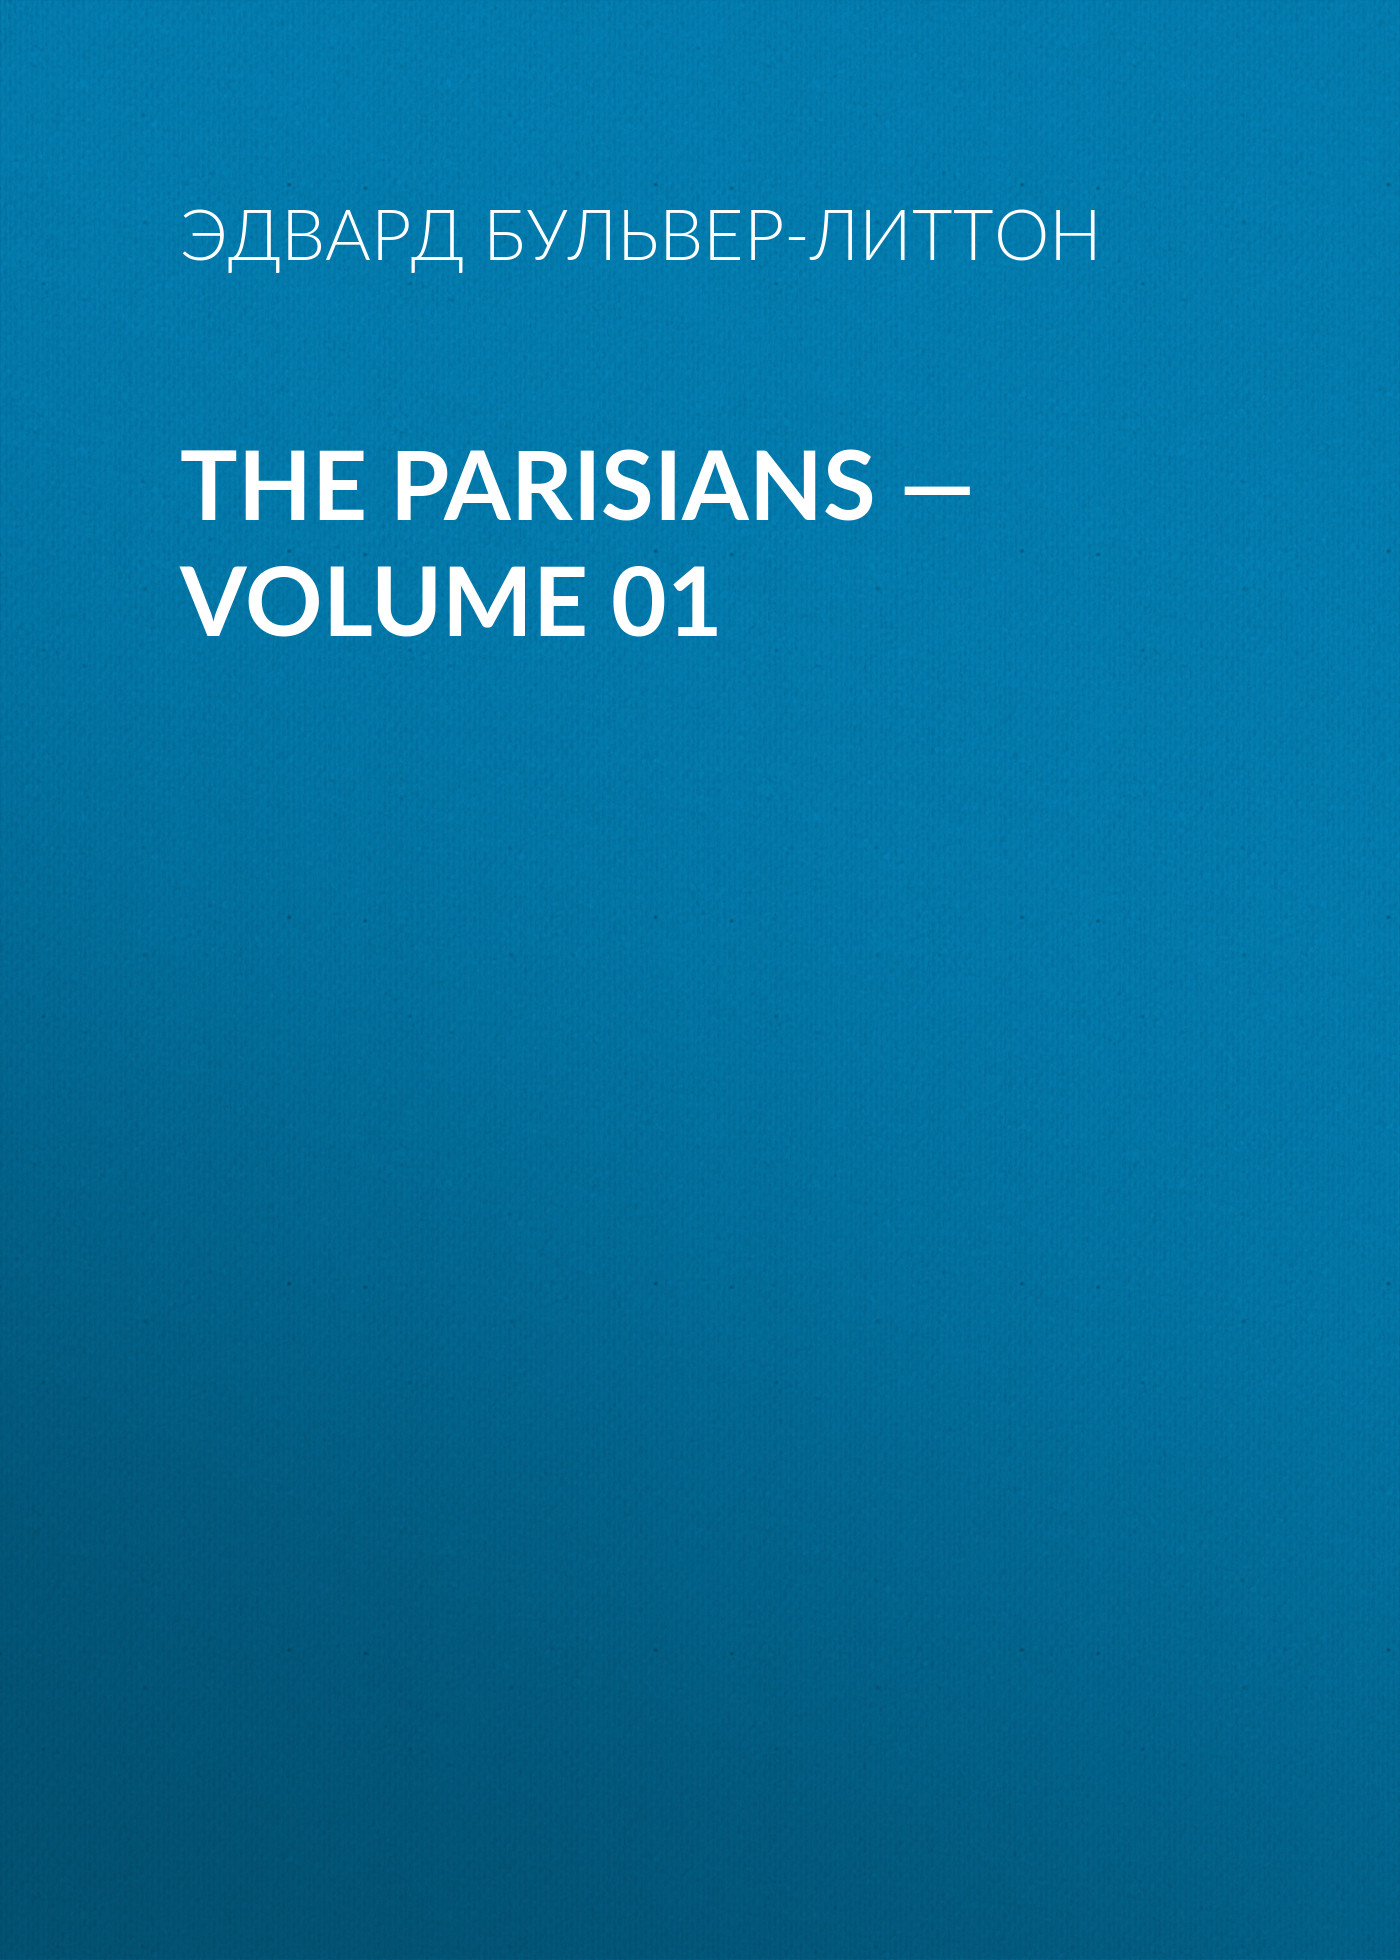 The Parisians — Volume 01